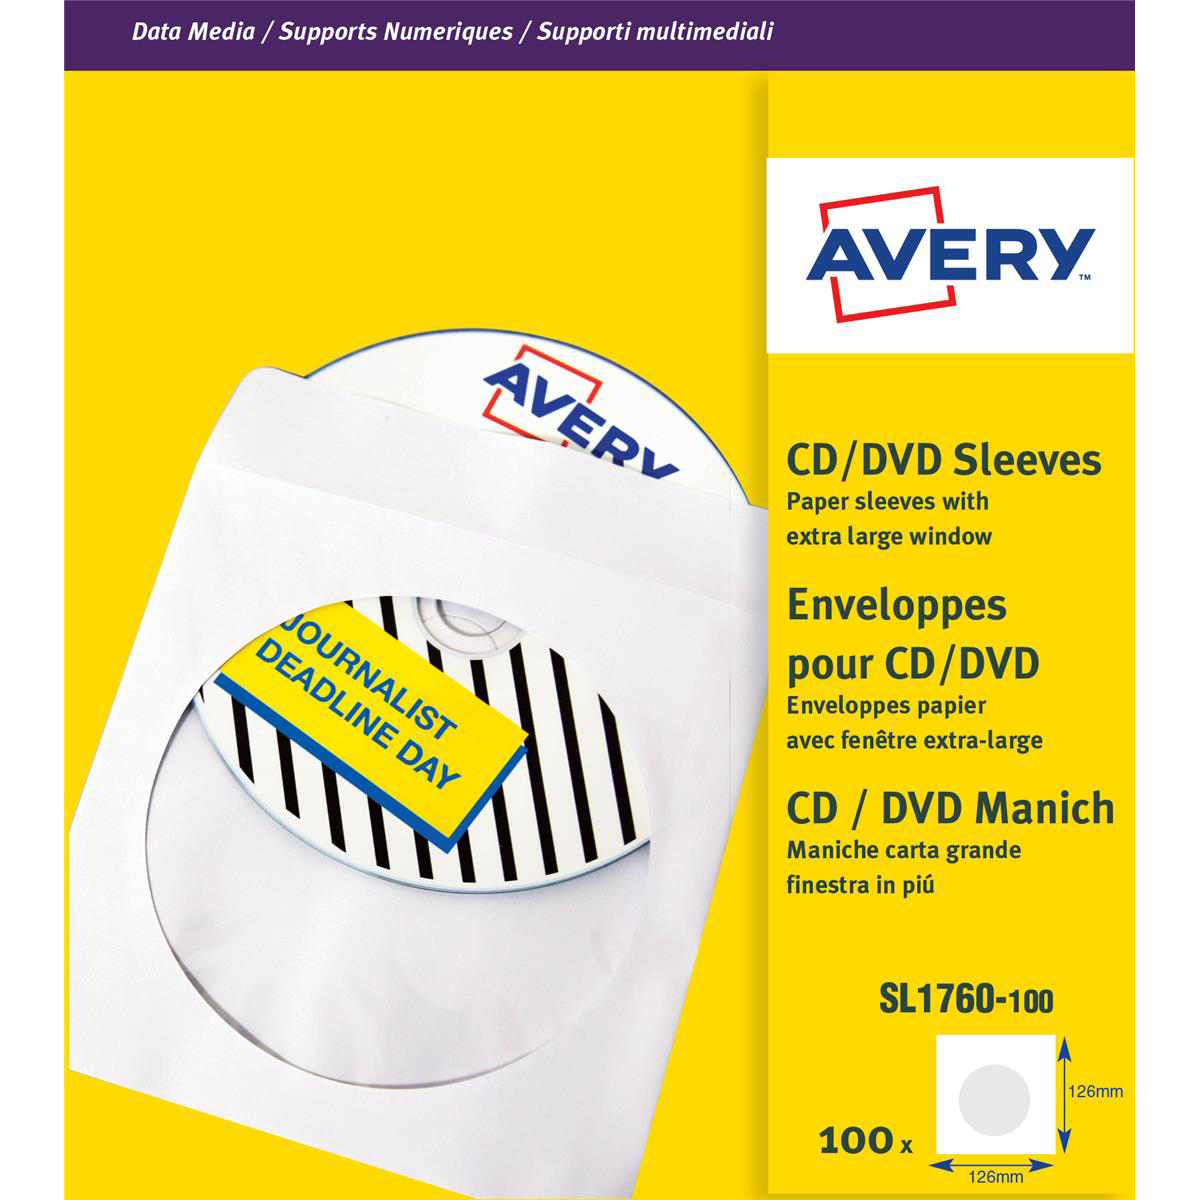 Avery CD/DVD Paper Sleeves with clear window 126x126mm White Ref SL1760-100 [Pack 100]